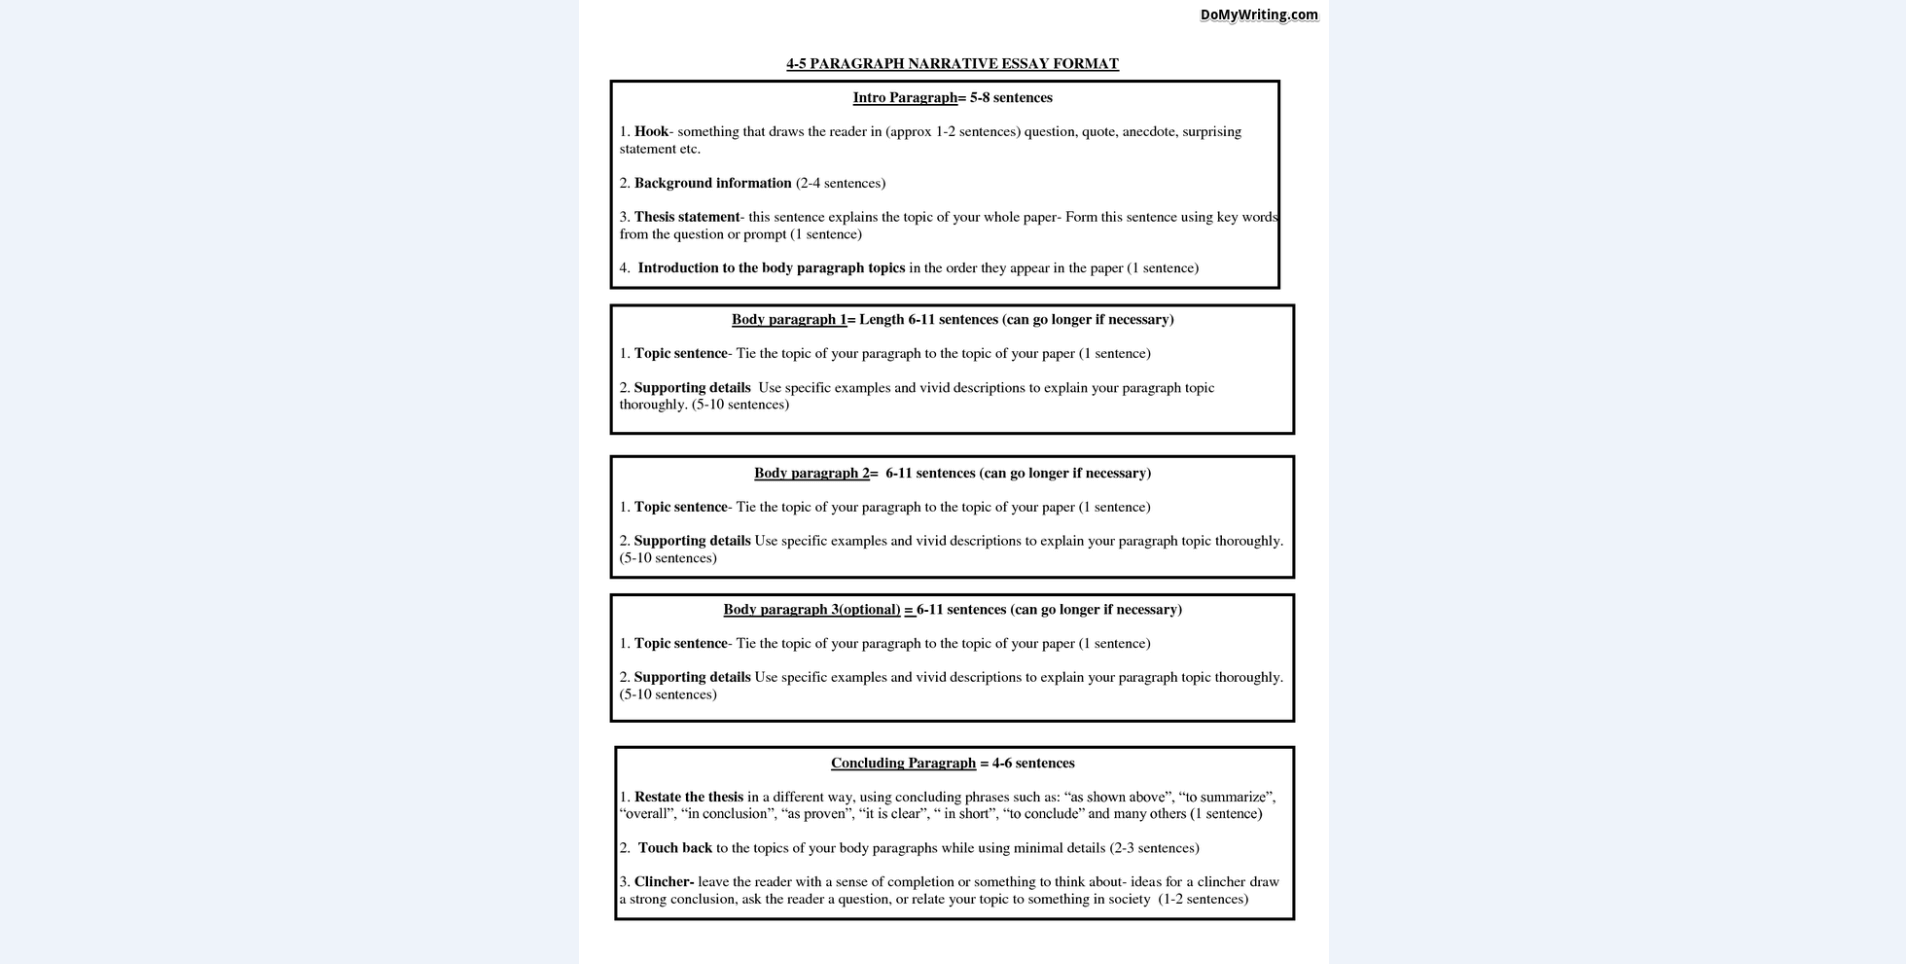 008 Narrative Essay Format Exceptional Sample Spm Structure Pdf Full